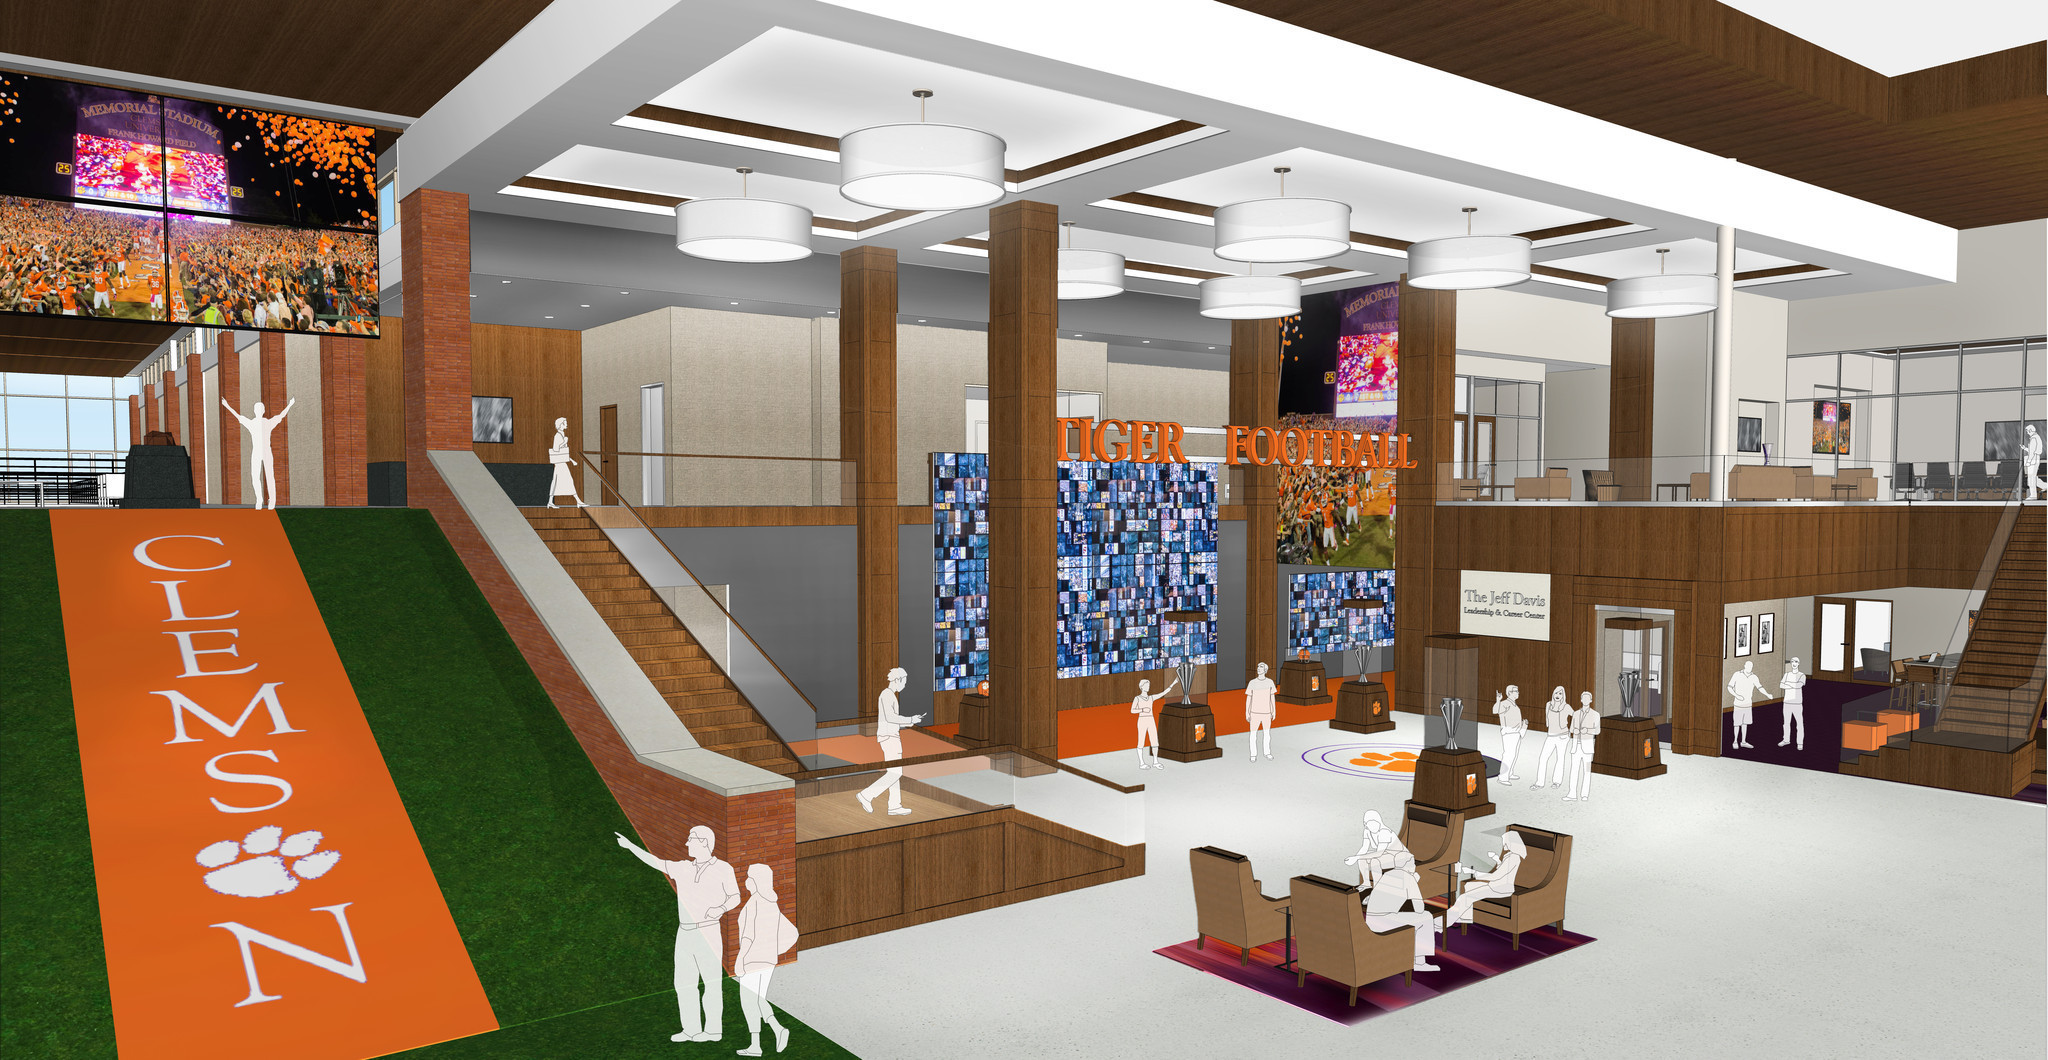 Colleges spend fortunes on lavish athletic facilities for Athletic training facility design